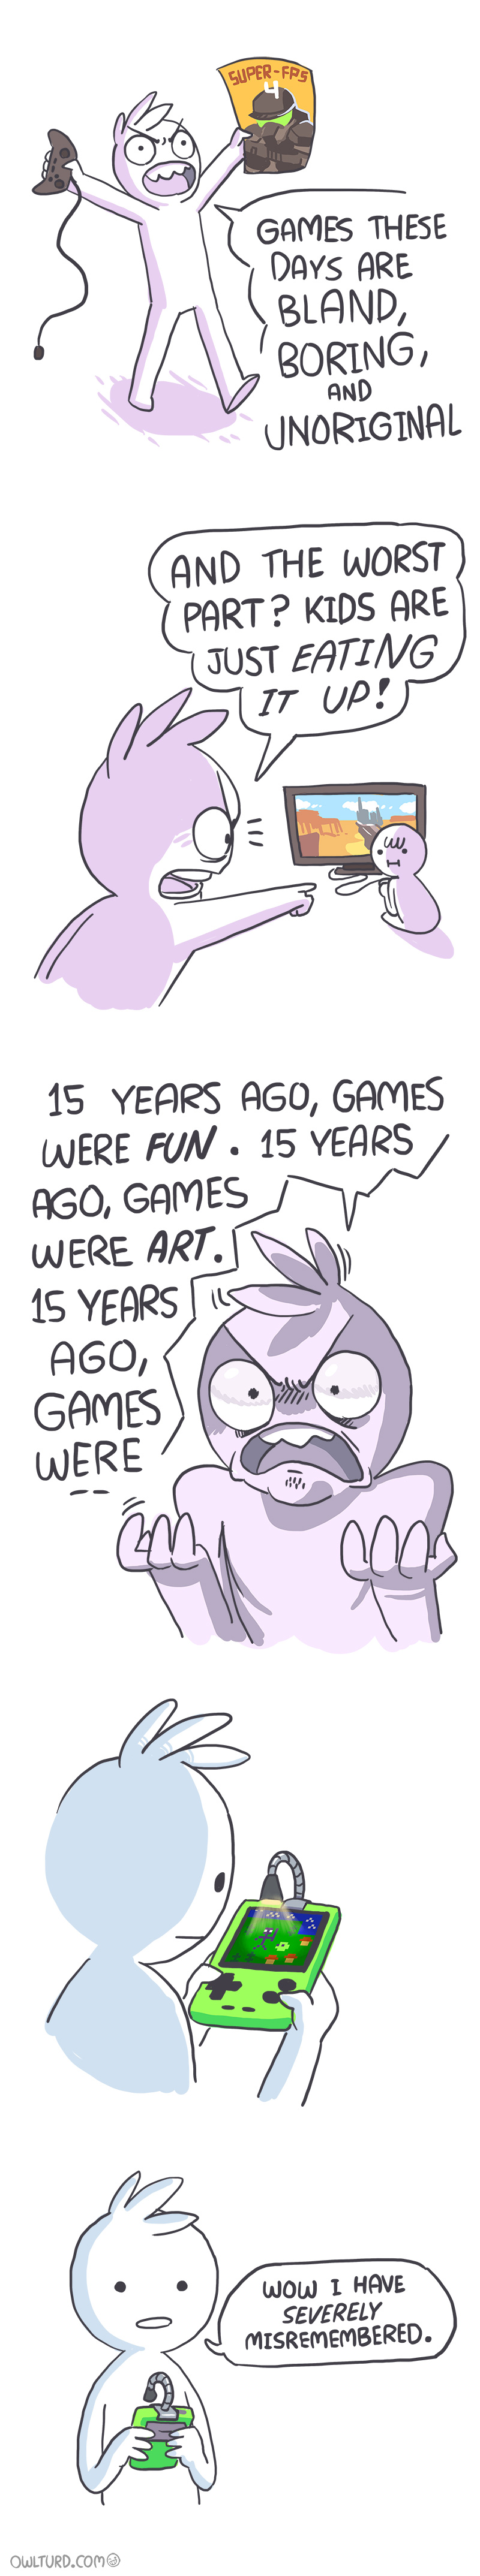 Video Games These Days Comic